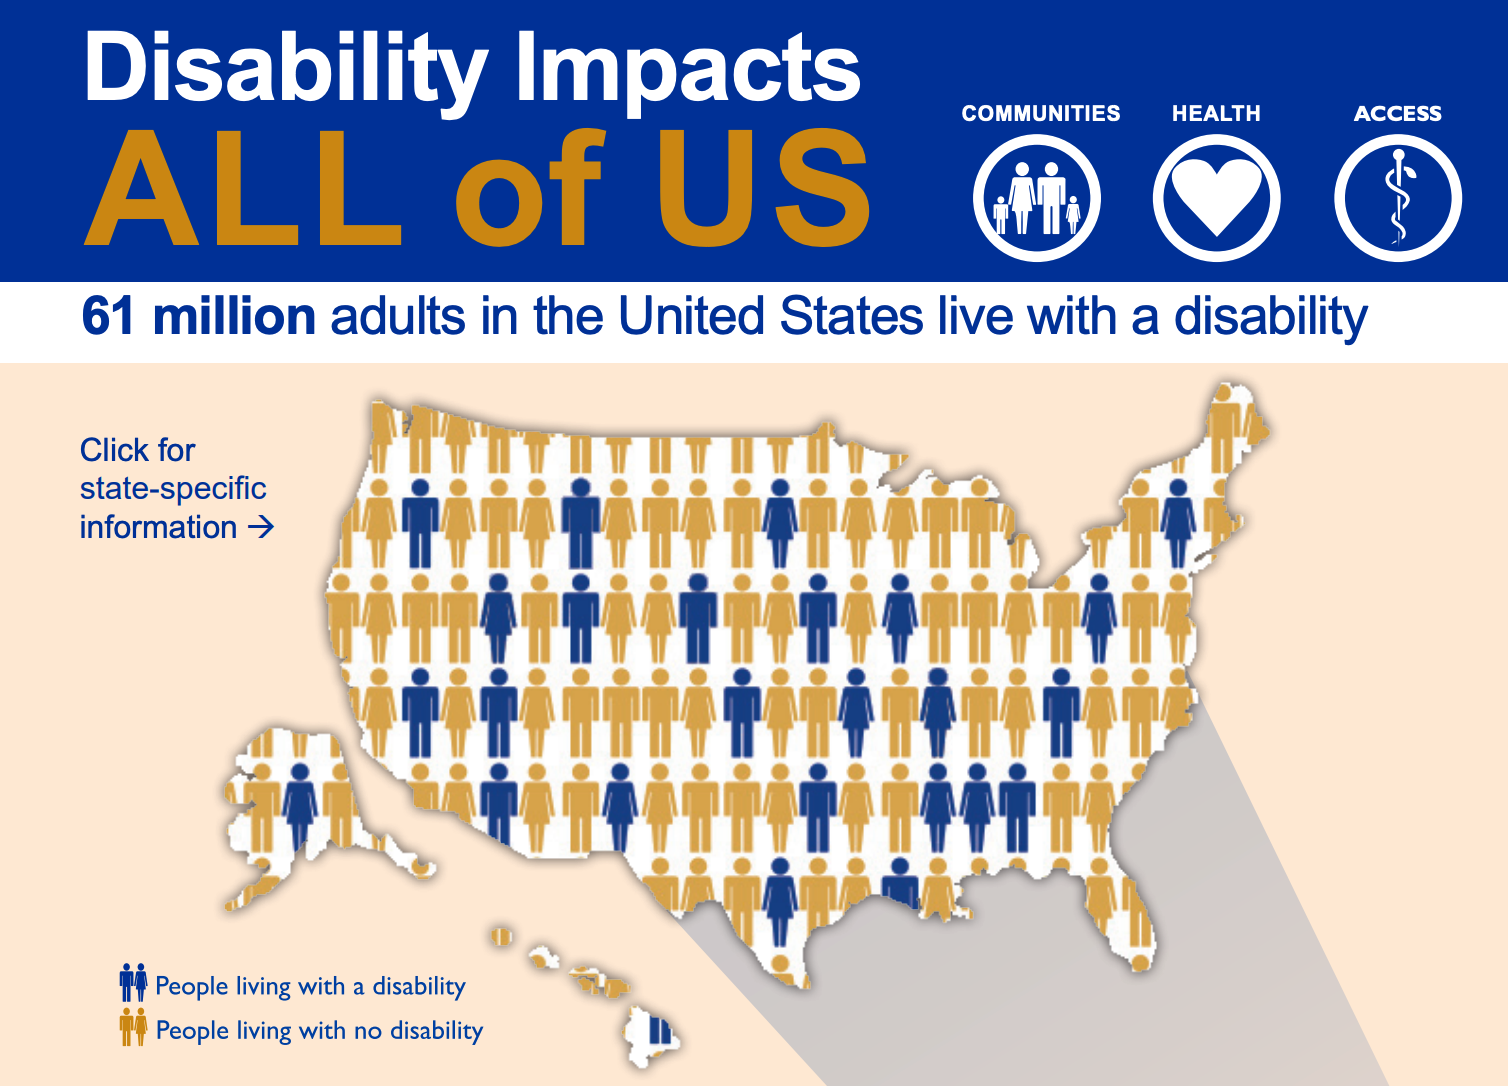 ccording to research from the Centers for Disease Control and Prevention, 61 million adults in the United States have some type of disability.